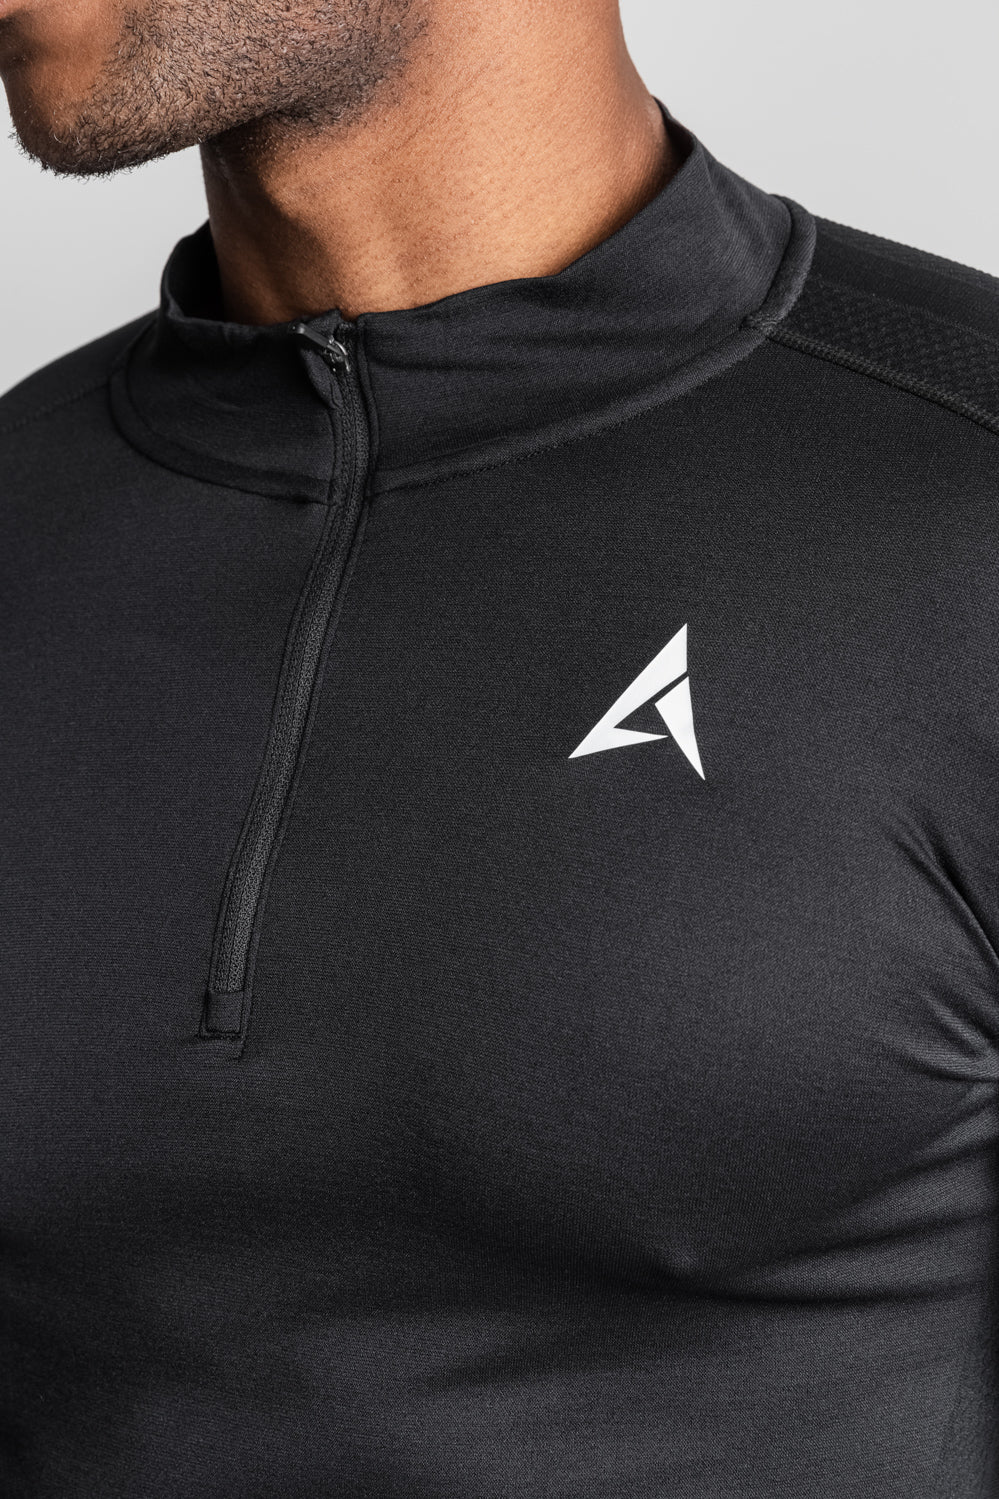 Static 1/4 Zip - Black